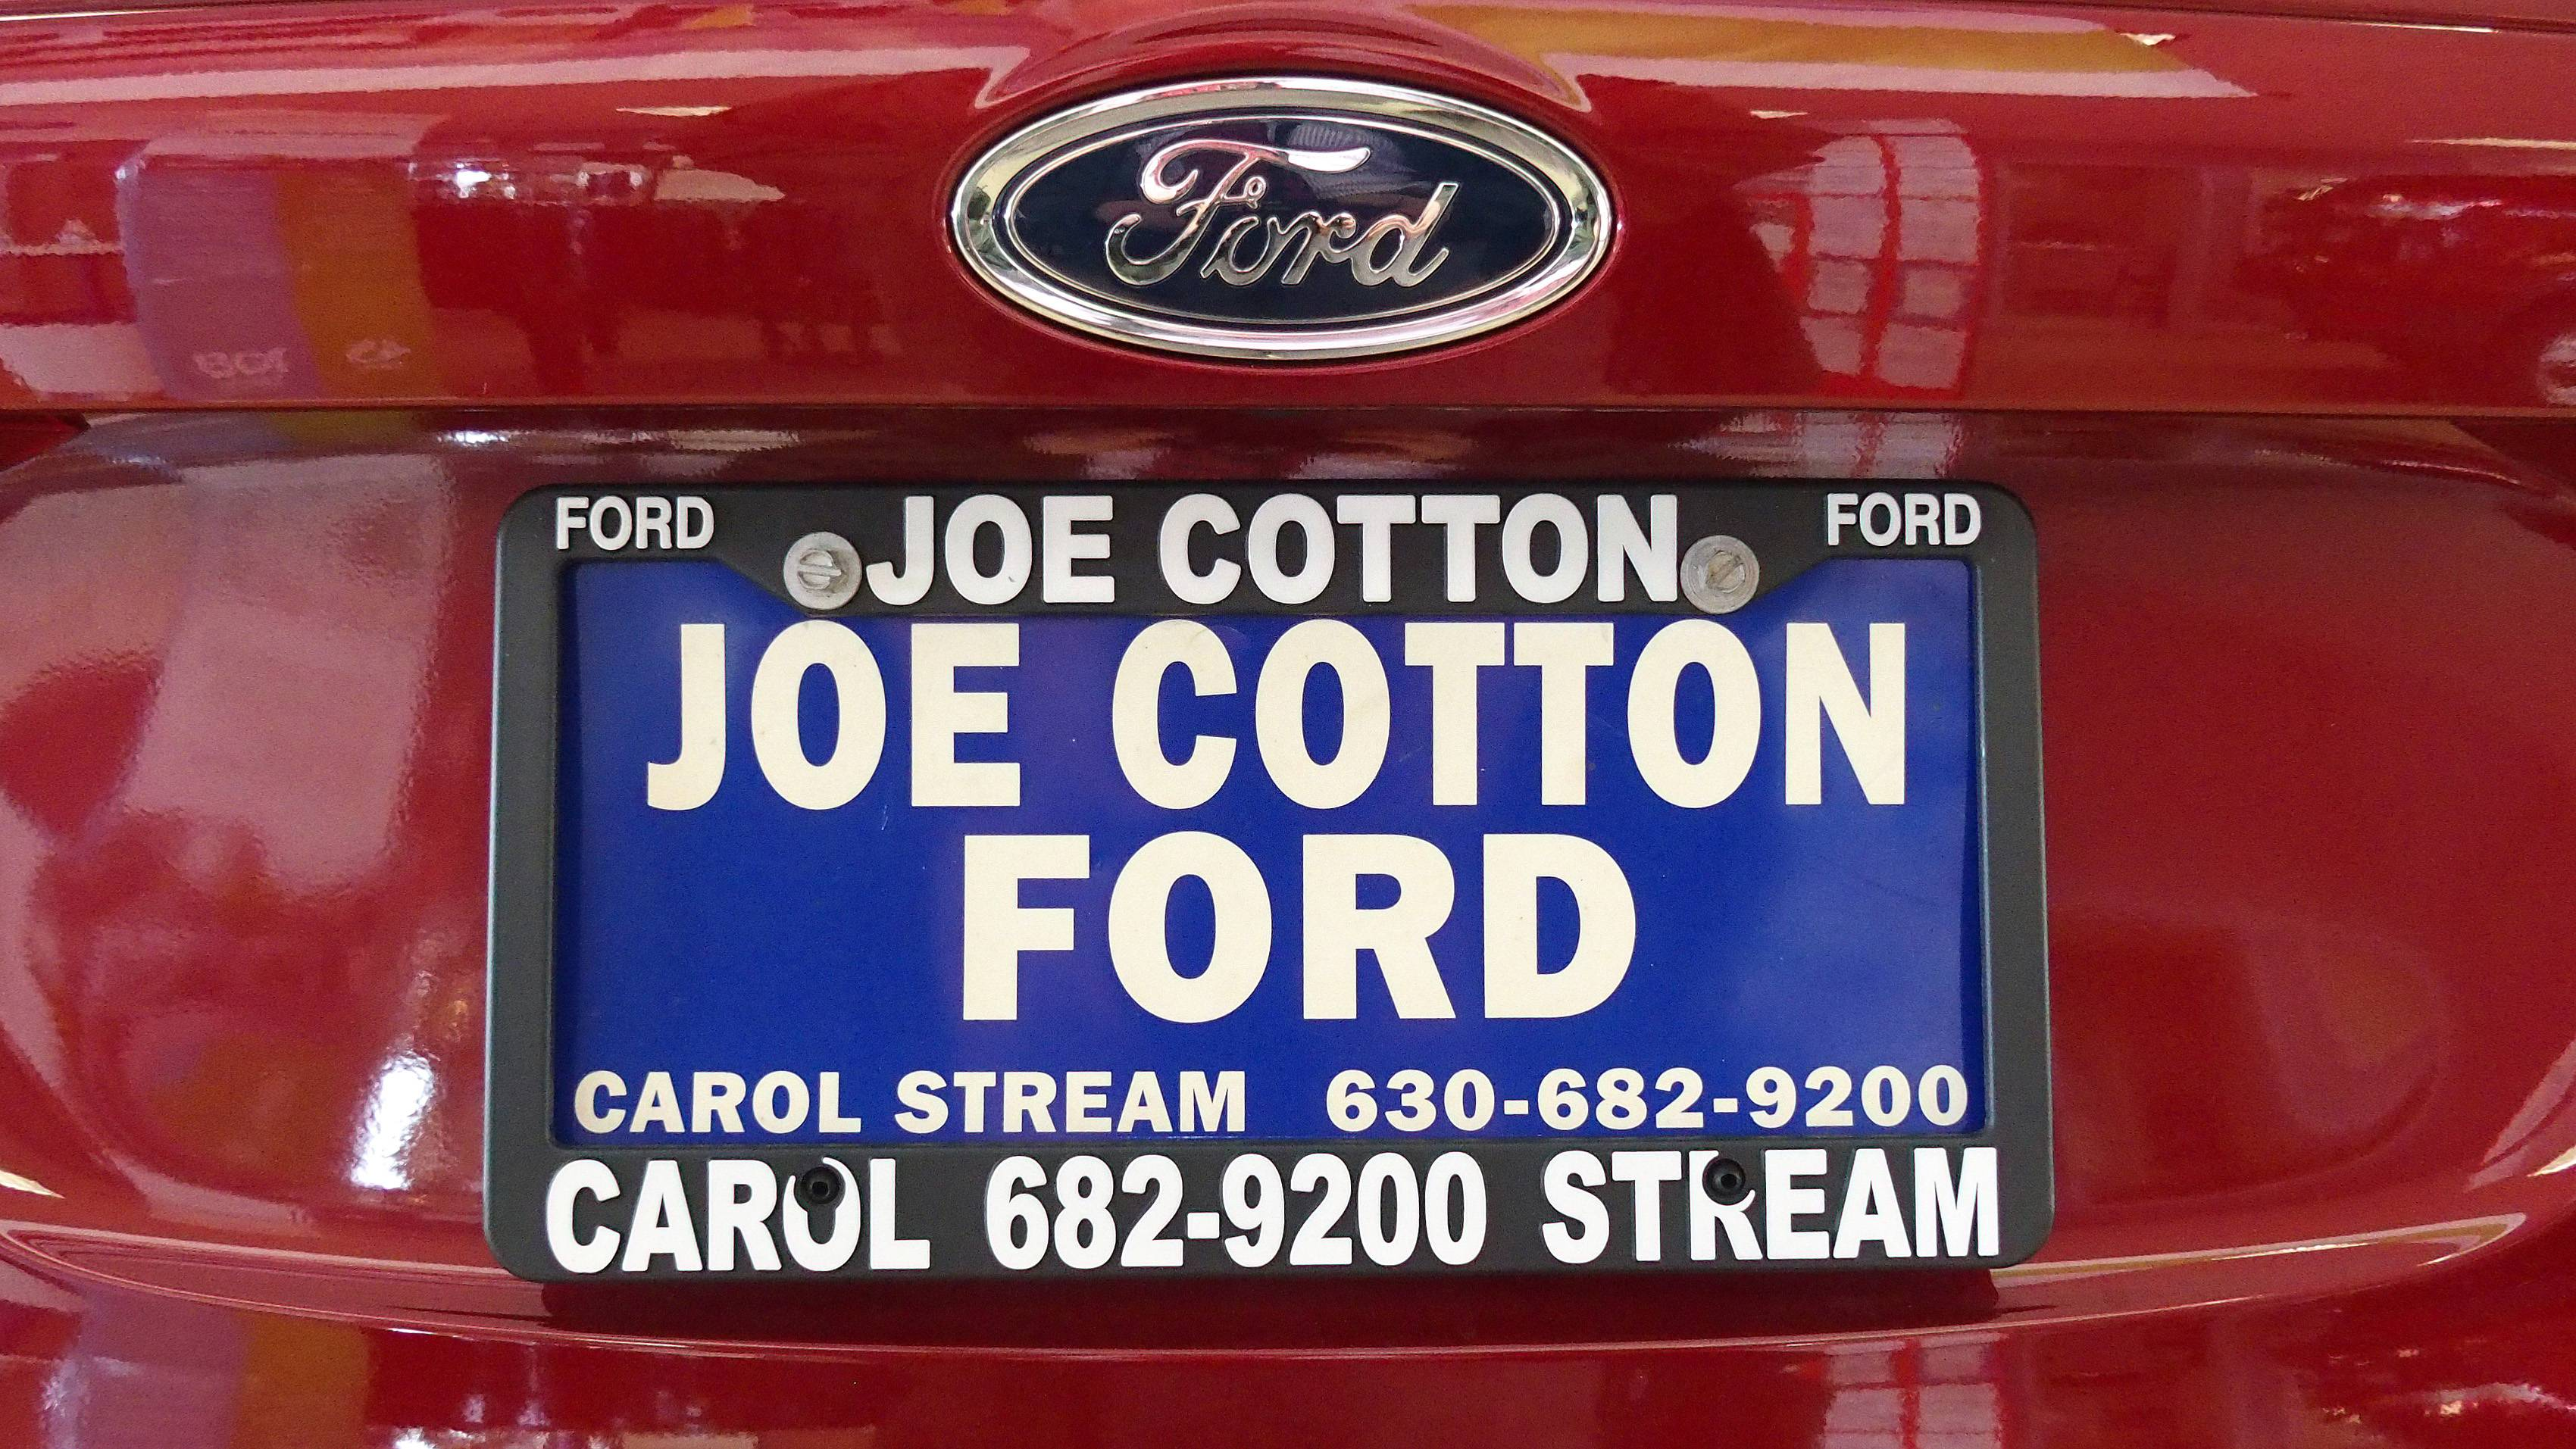 Joe Cotton will be the grand marshal of this year's Fourth of July Parade in Carol Stream.